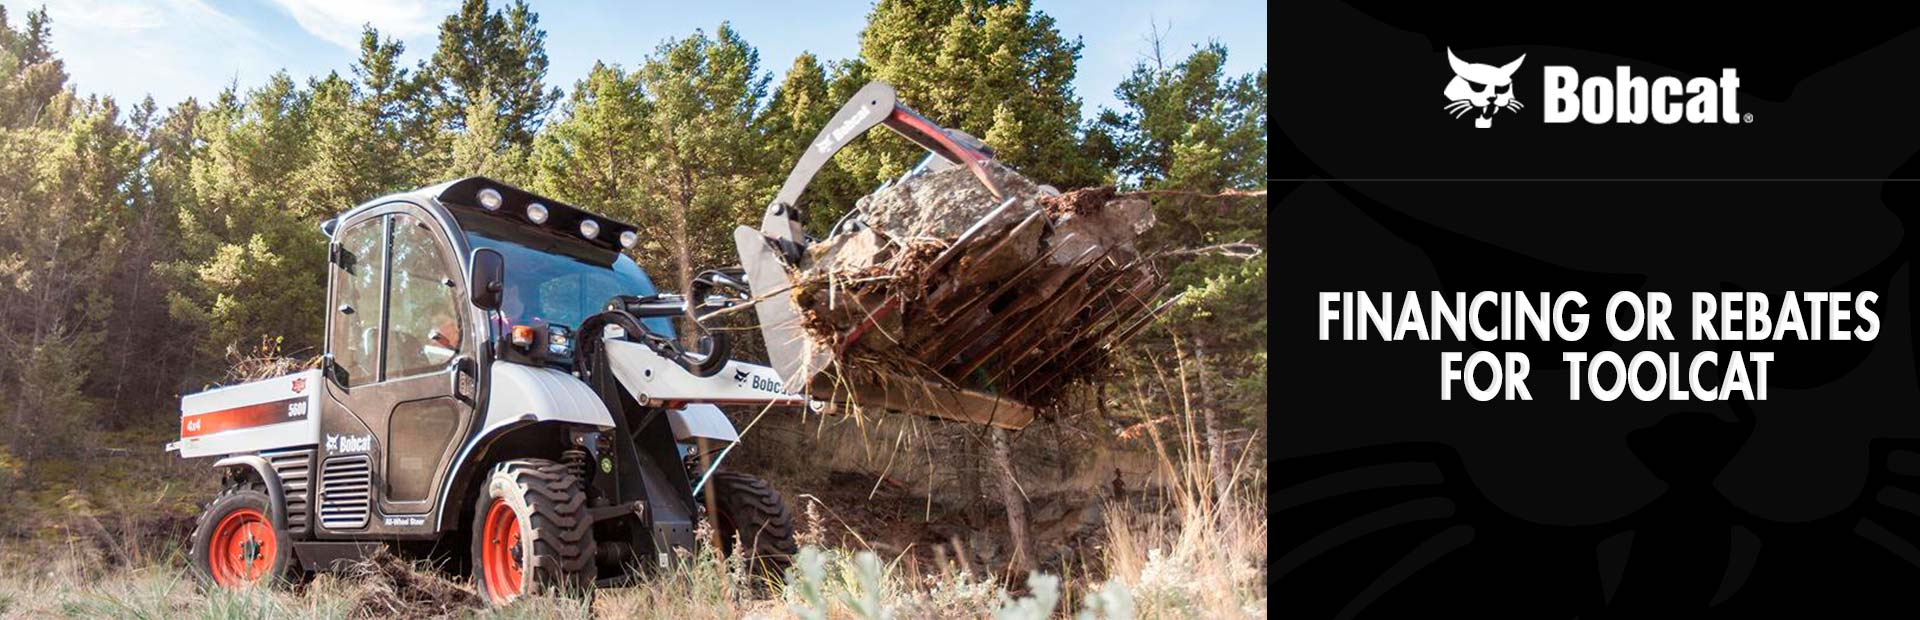 Bobcat: Financing or Rebates for Toolcat™